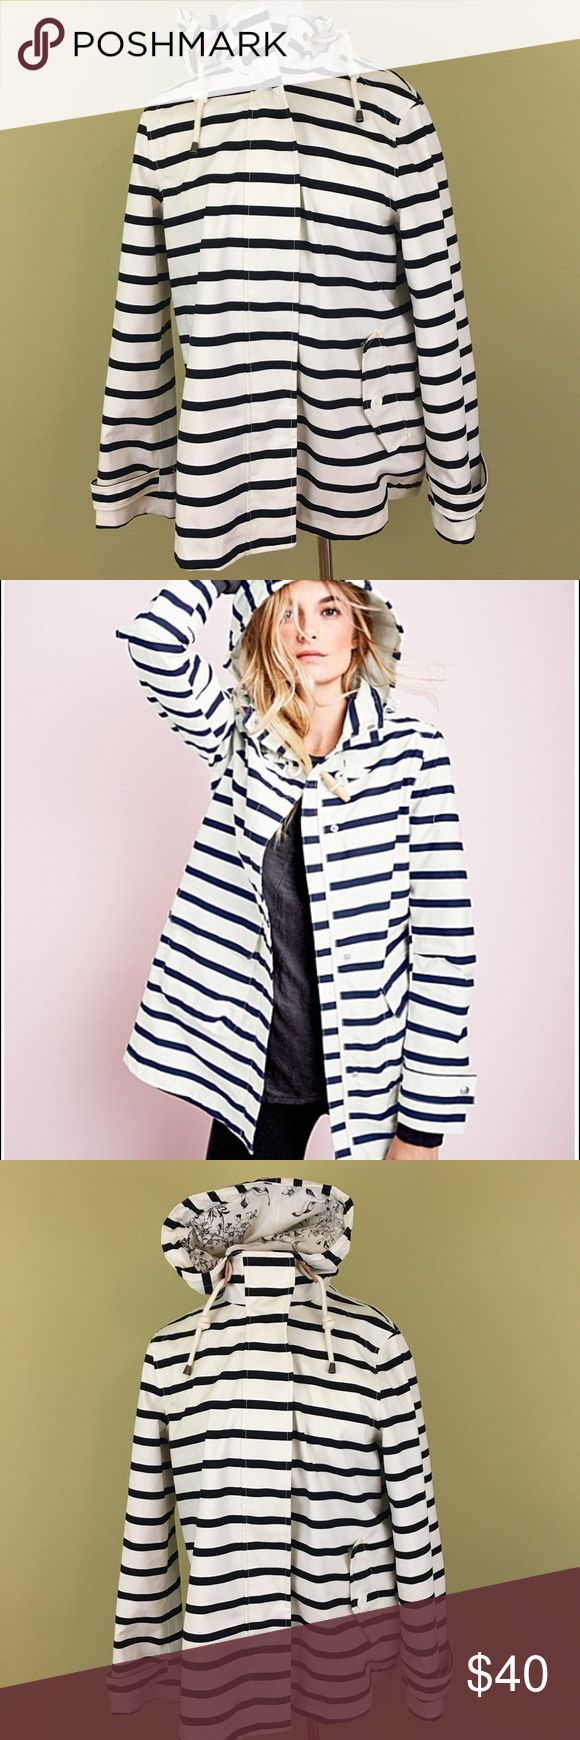 Joules Haven Waterproof Striped Jacket Sz. 10 $198 Everyone needs a fab raincoat. This Joules coat has an oversized hood, a nautical wooden toggle — and a charming paisley jersey-knit lined interior. Crafted in breathable, waterproof cotton.  FEATURES: Classic fit Stand collar Attached hood; drawcord Long sleeves Front storm flap; snap and hidden-zipper closure Two patch pockets 3/4 length 100% cotton; waterproof PU coating Cotton jersey-knit lining Imported(UK Brand) Joules Jackets & Coats…